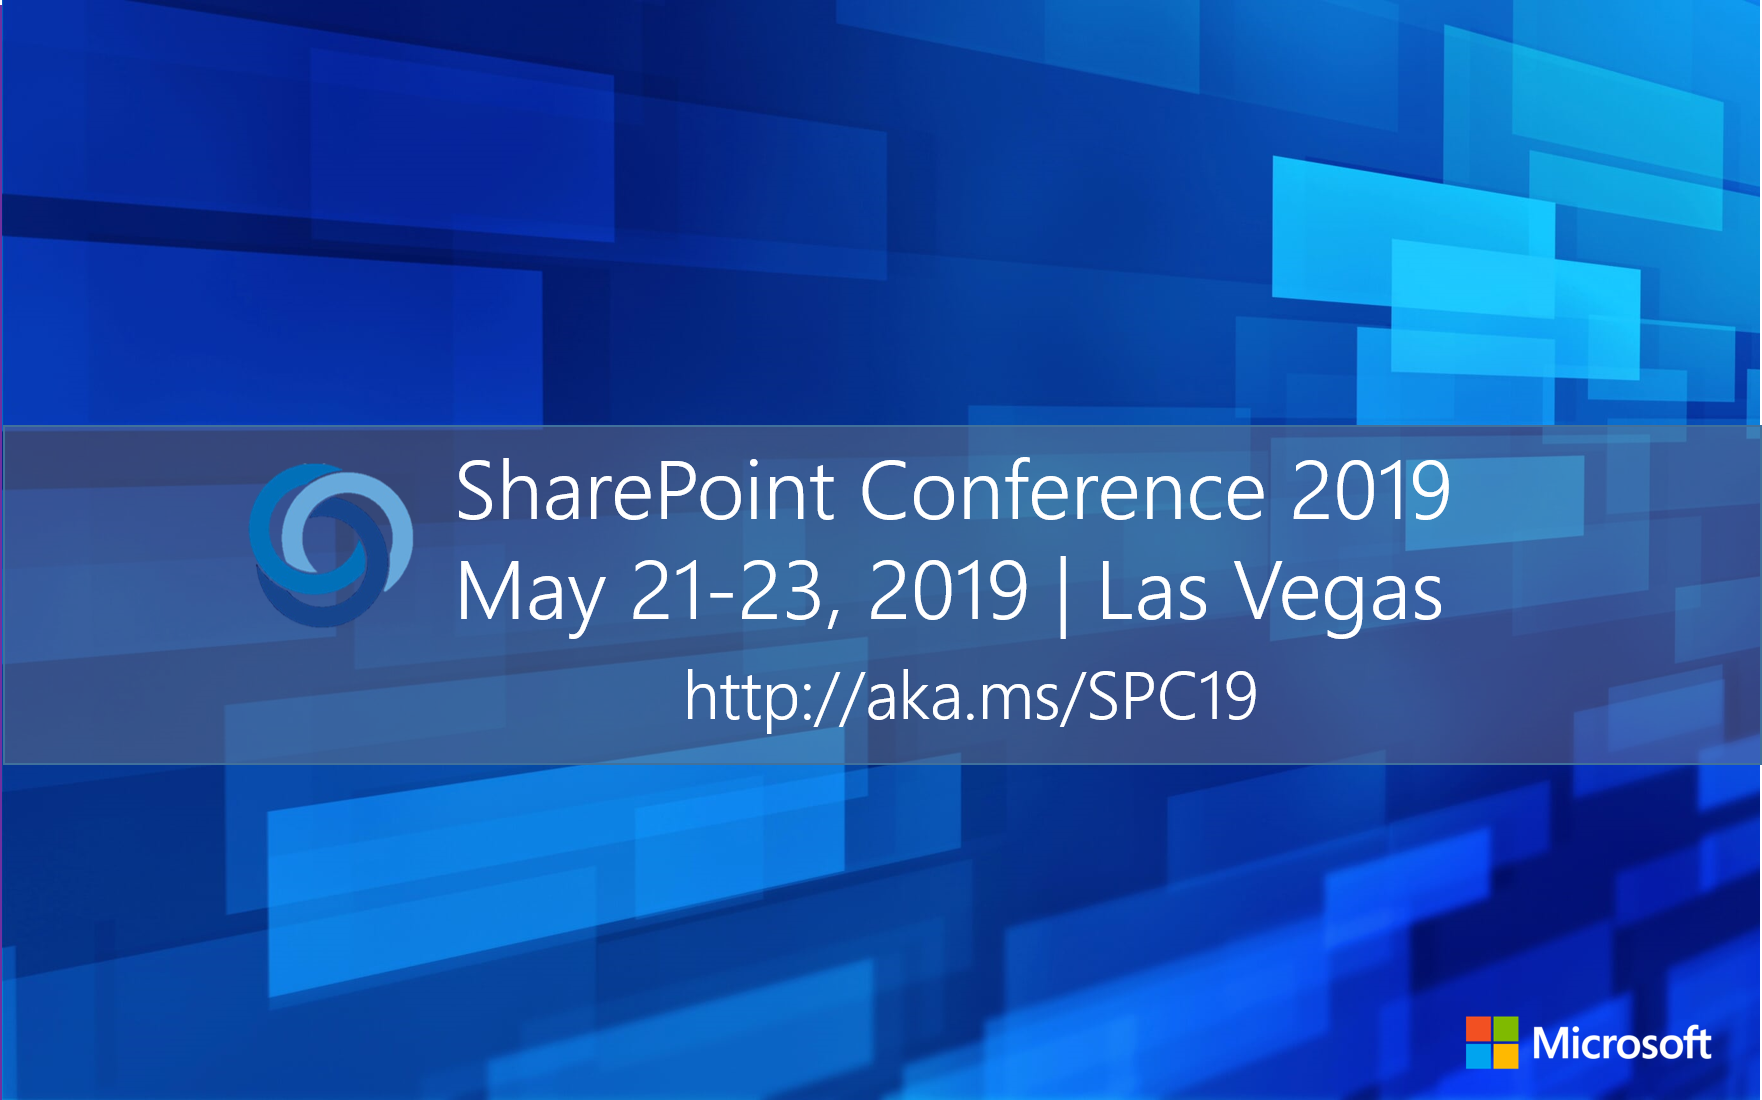 Join us at the SharePoint Conference – May 21-23, 2019 in Las Vegas